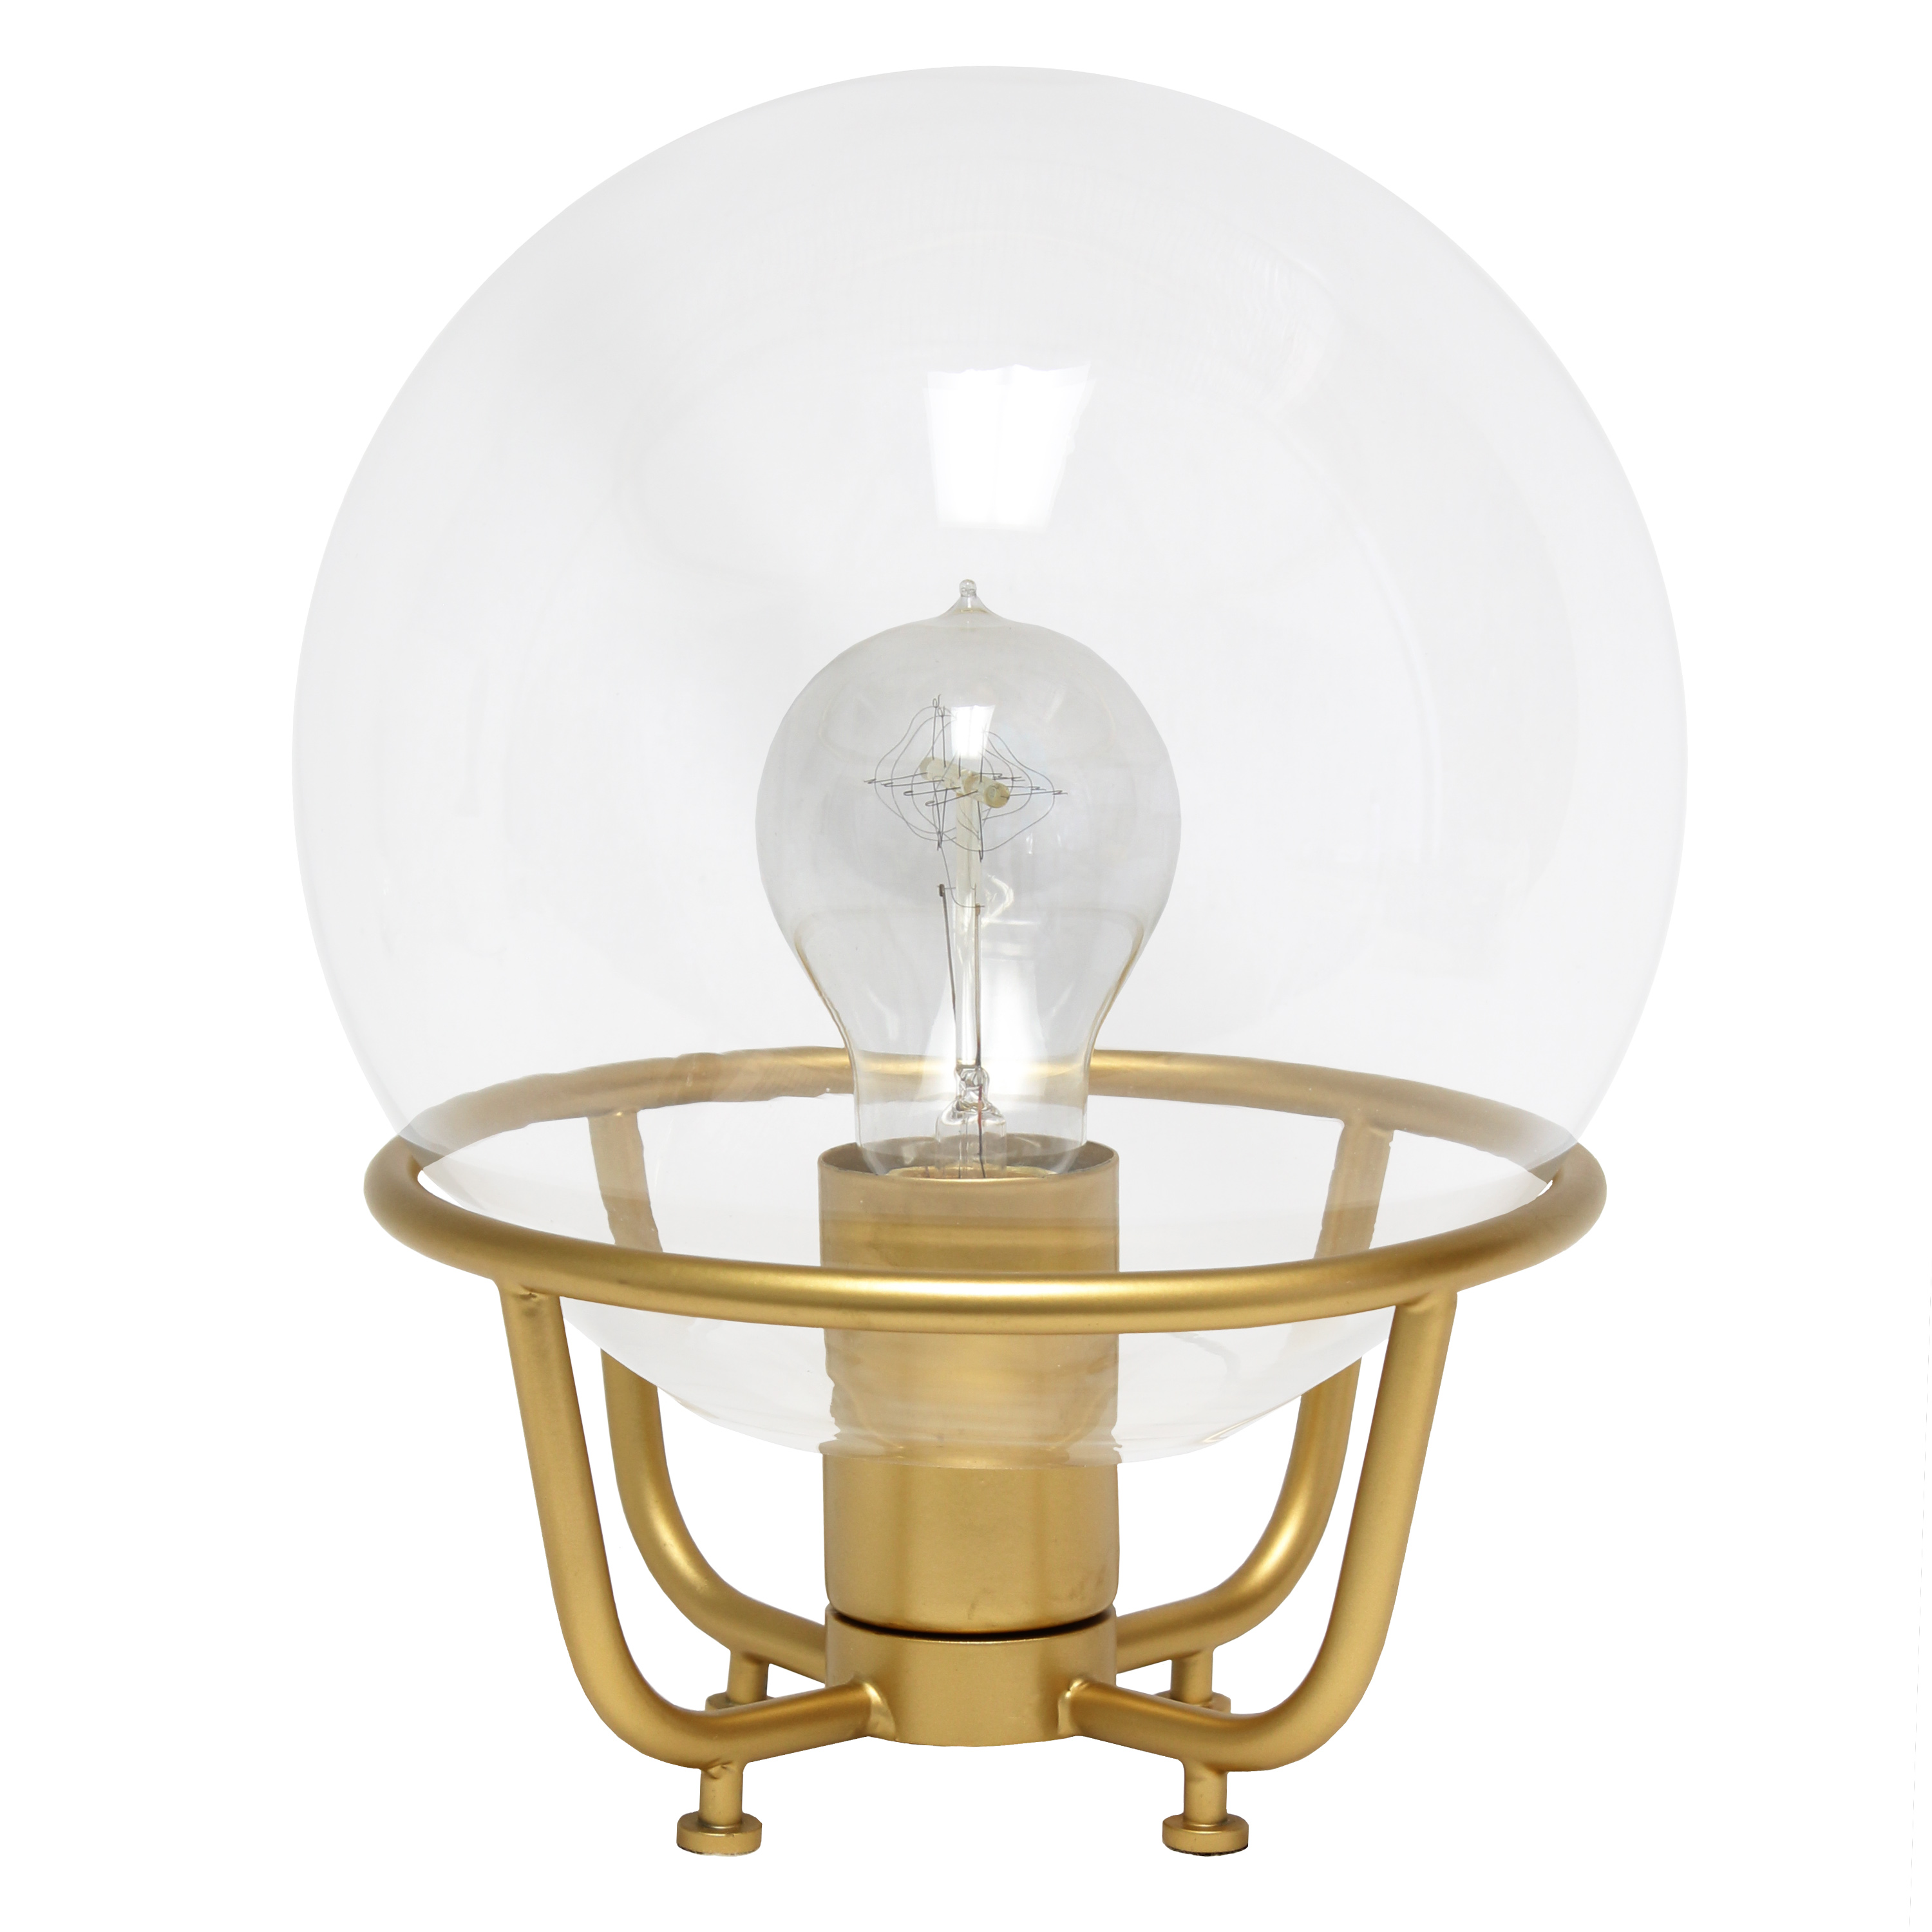 Lalia Home Old World Globe Glass Table Lamp, Matte Gold